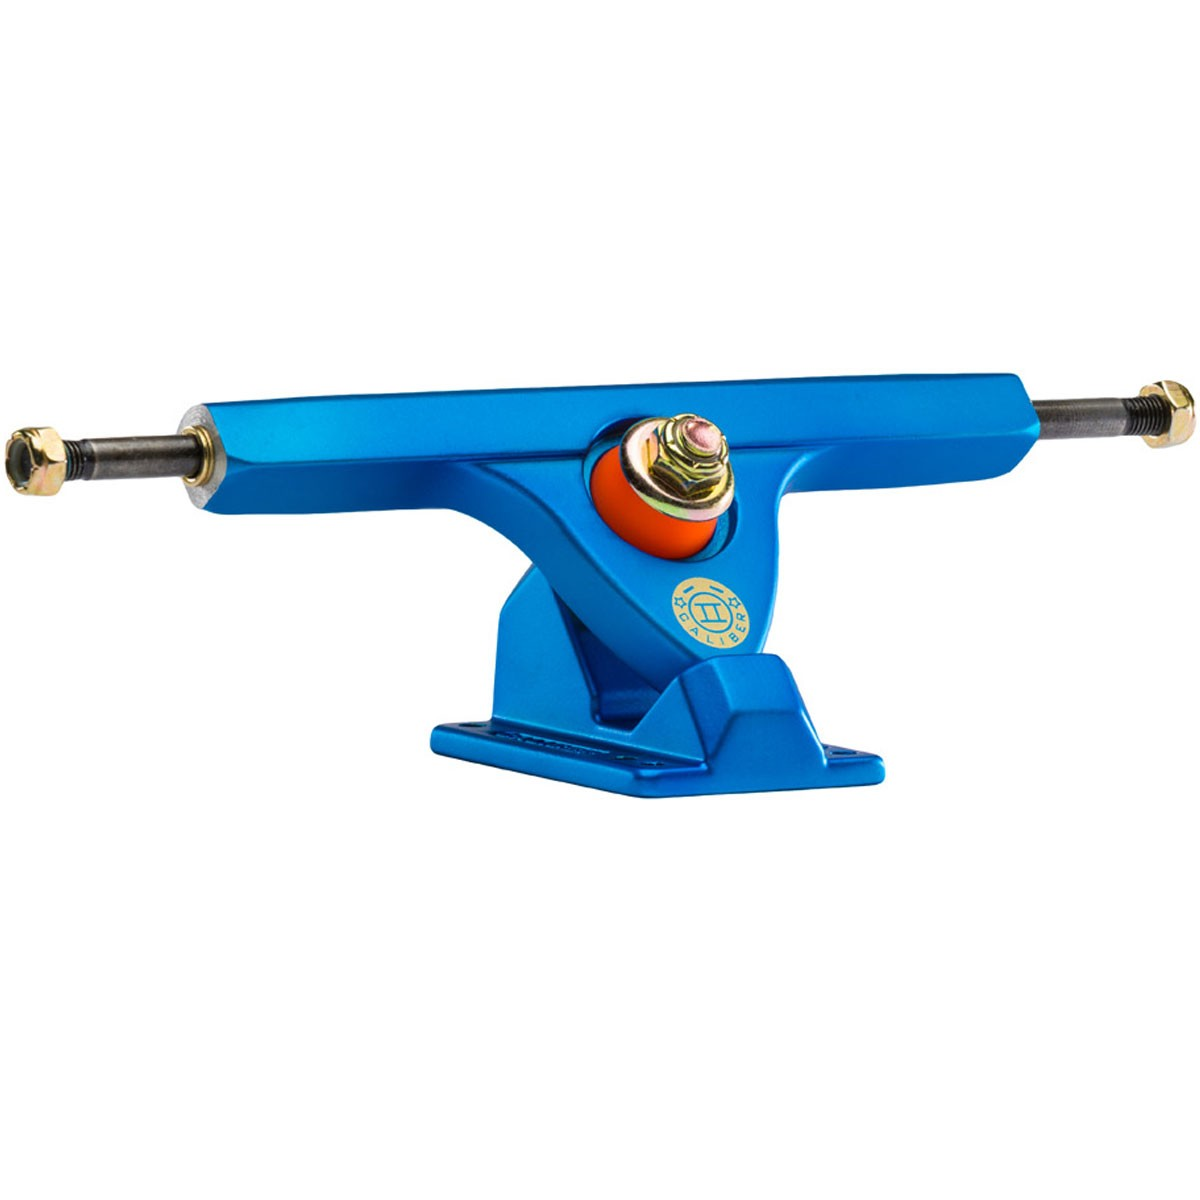 Caliber II Longboard Trucks - Satin Blue / Orange 50 Degree